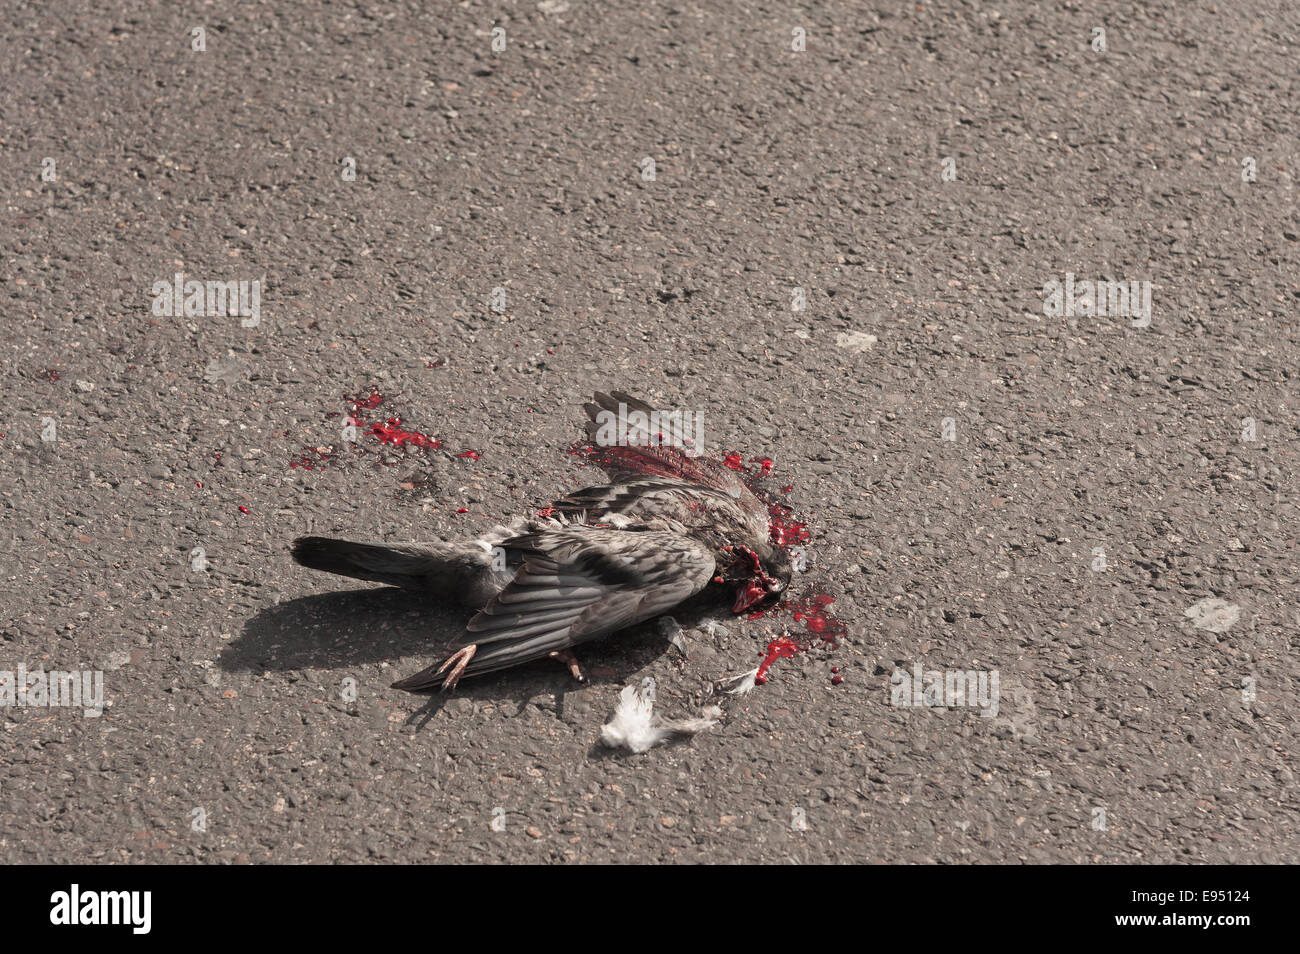 Hazards of dodging the traffic at Trafalgar square a pigeon has just been killed by a bus run over - Stock Image